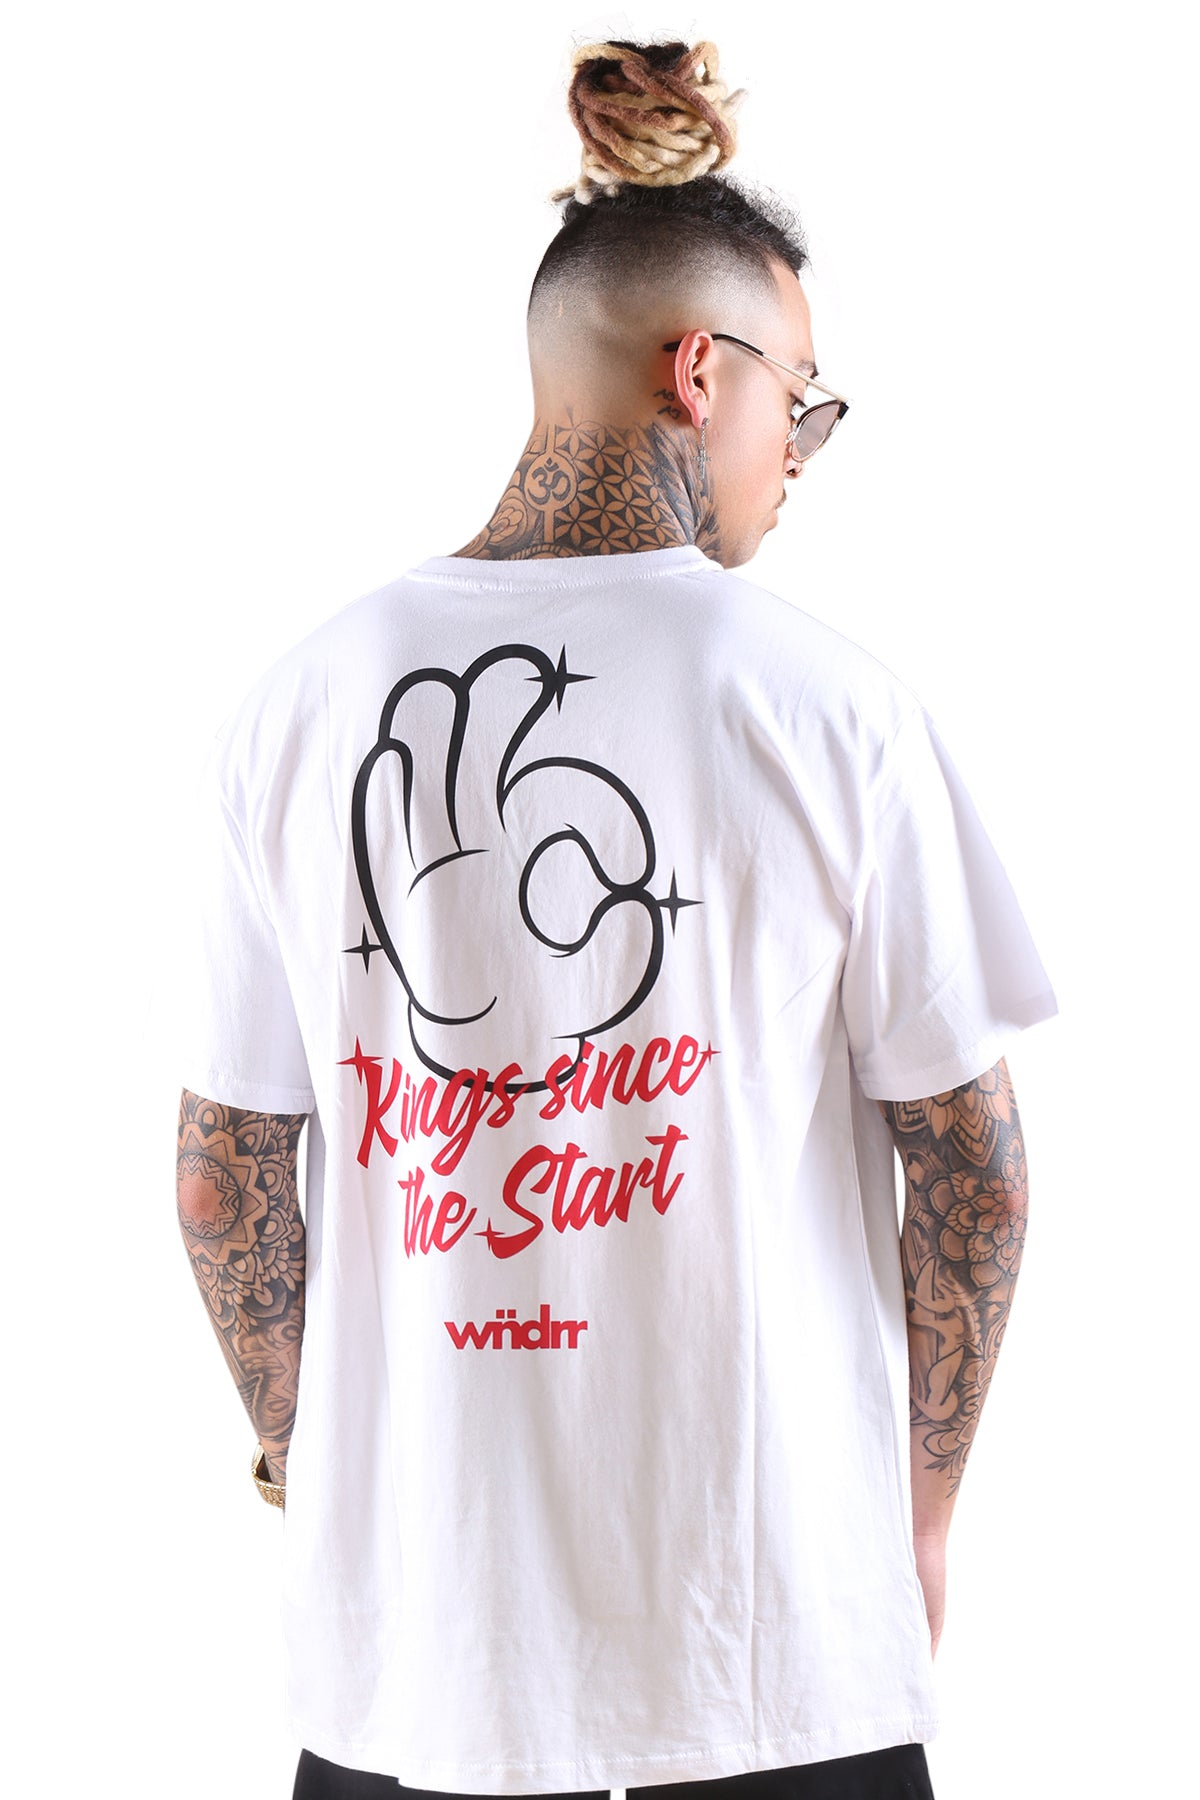 WNDRR Talent Custom Fit Tee White/Red